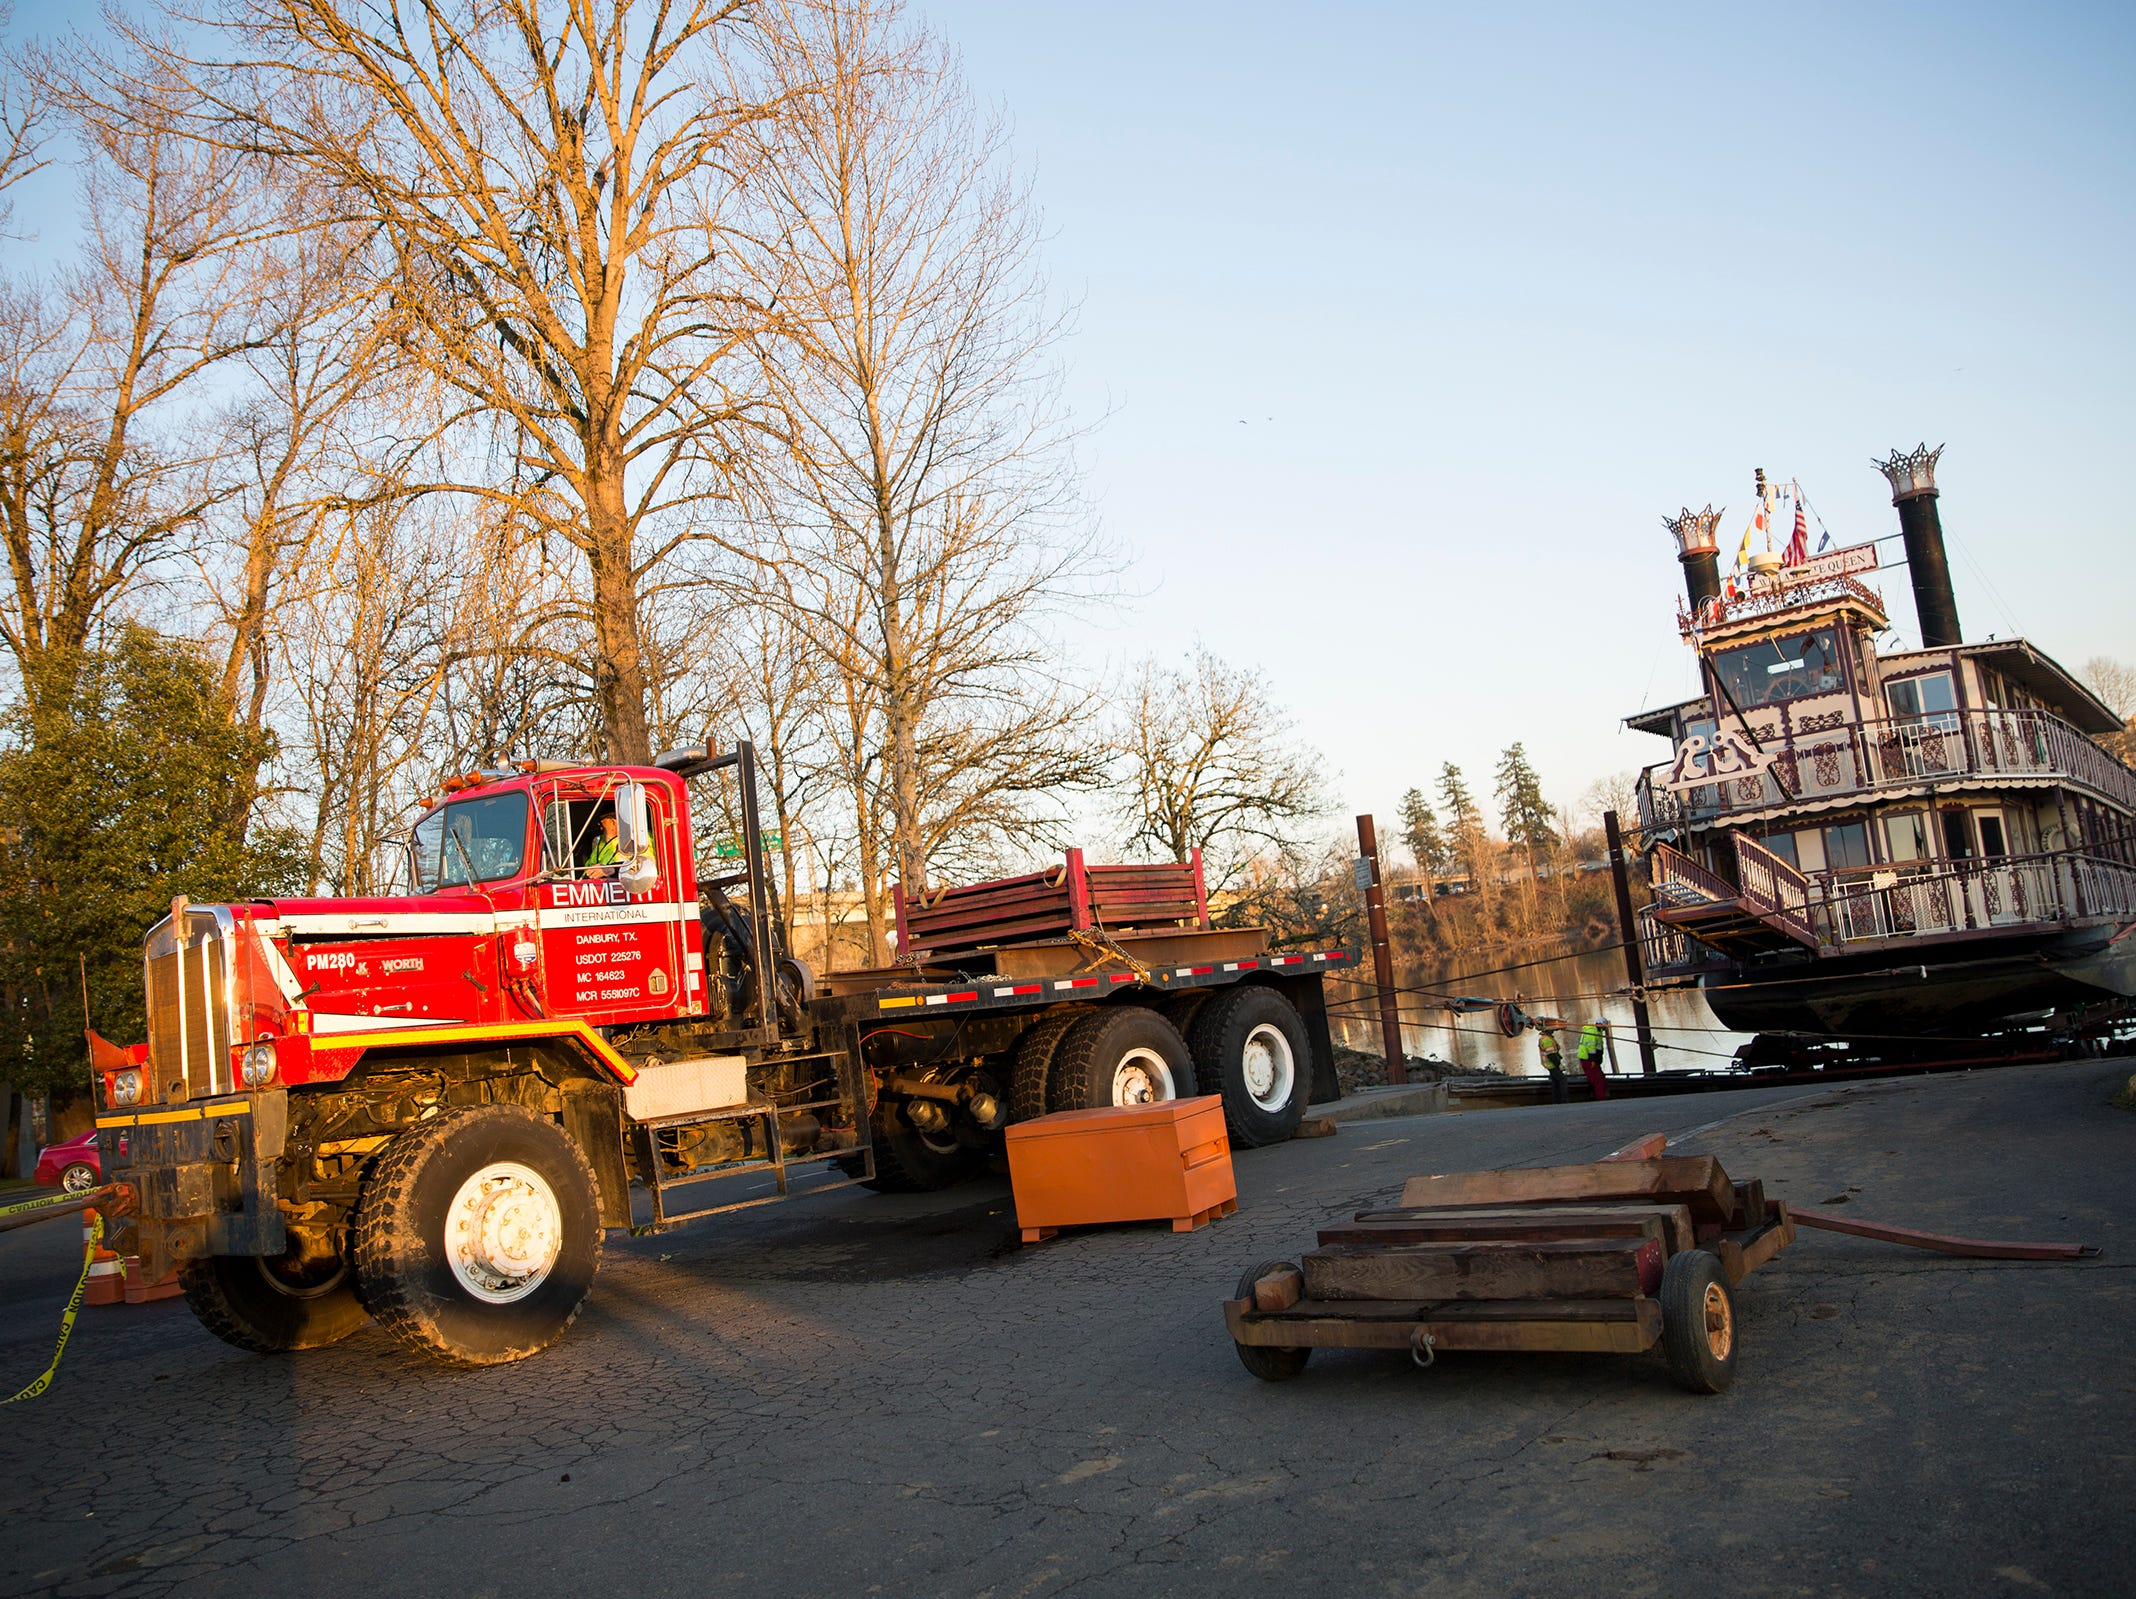 The Willamette Queen was brought ashore  for fiberglass repairs in Salem on Wednesday, Feb. 6, 2019. A crew from Emmert International, based in Clackamas, worked for a week to lift the boat out of the Willamette River.